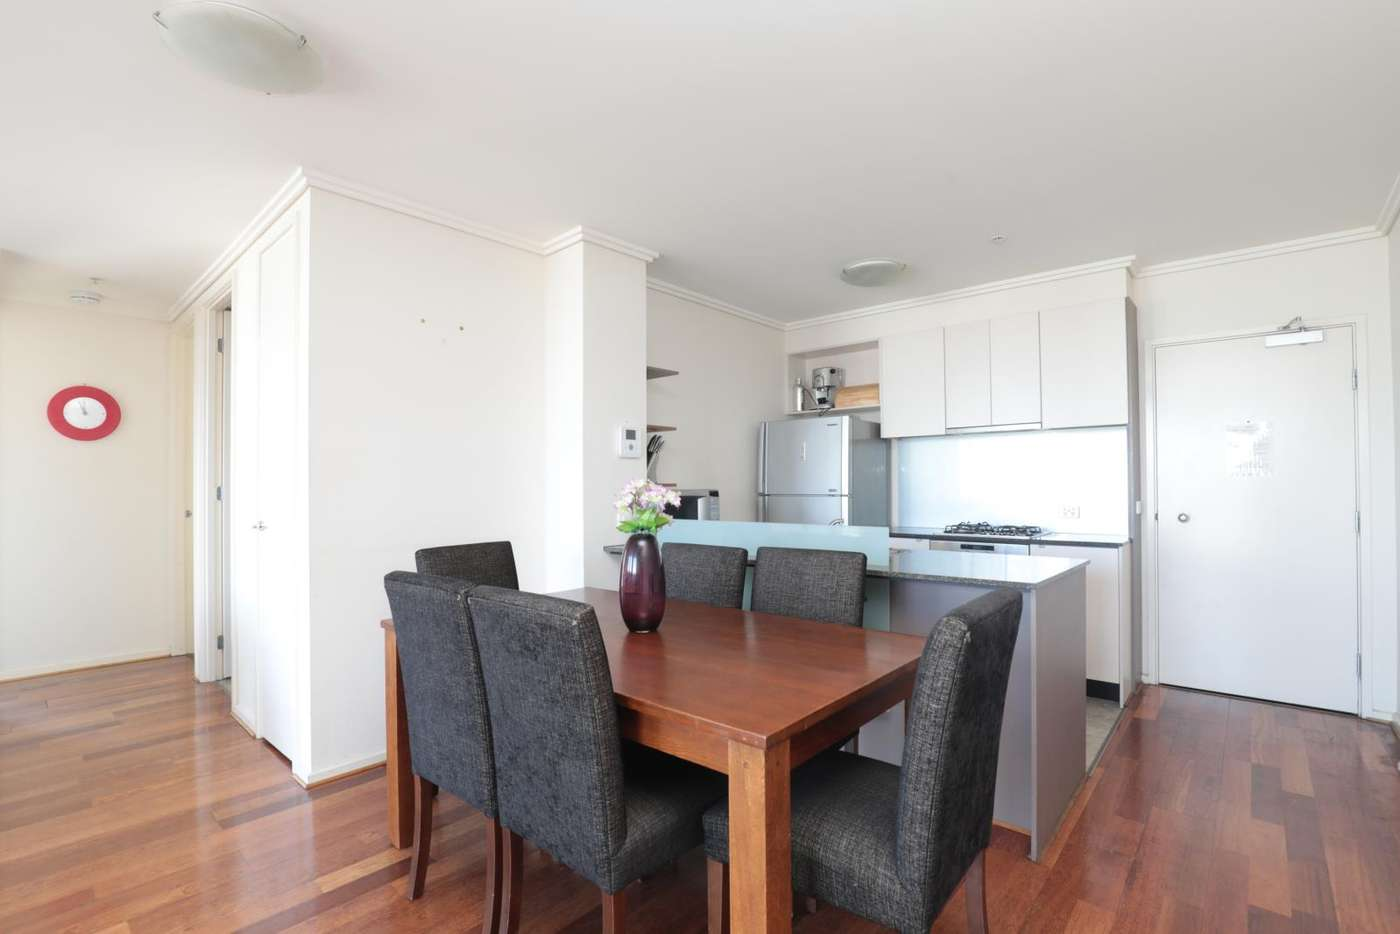 Main view of Homely apartment listing, 177/88 Kavanagh Street, Southbank VIC 3006